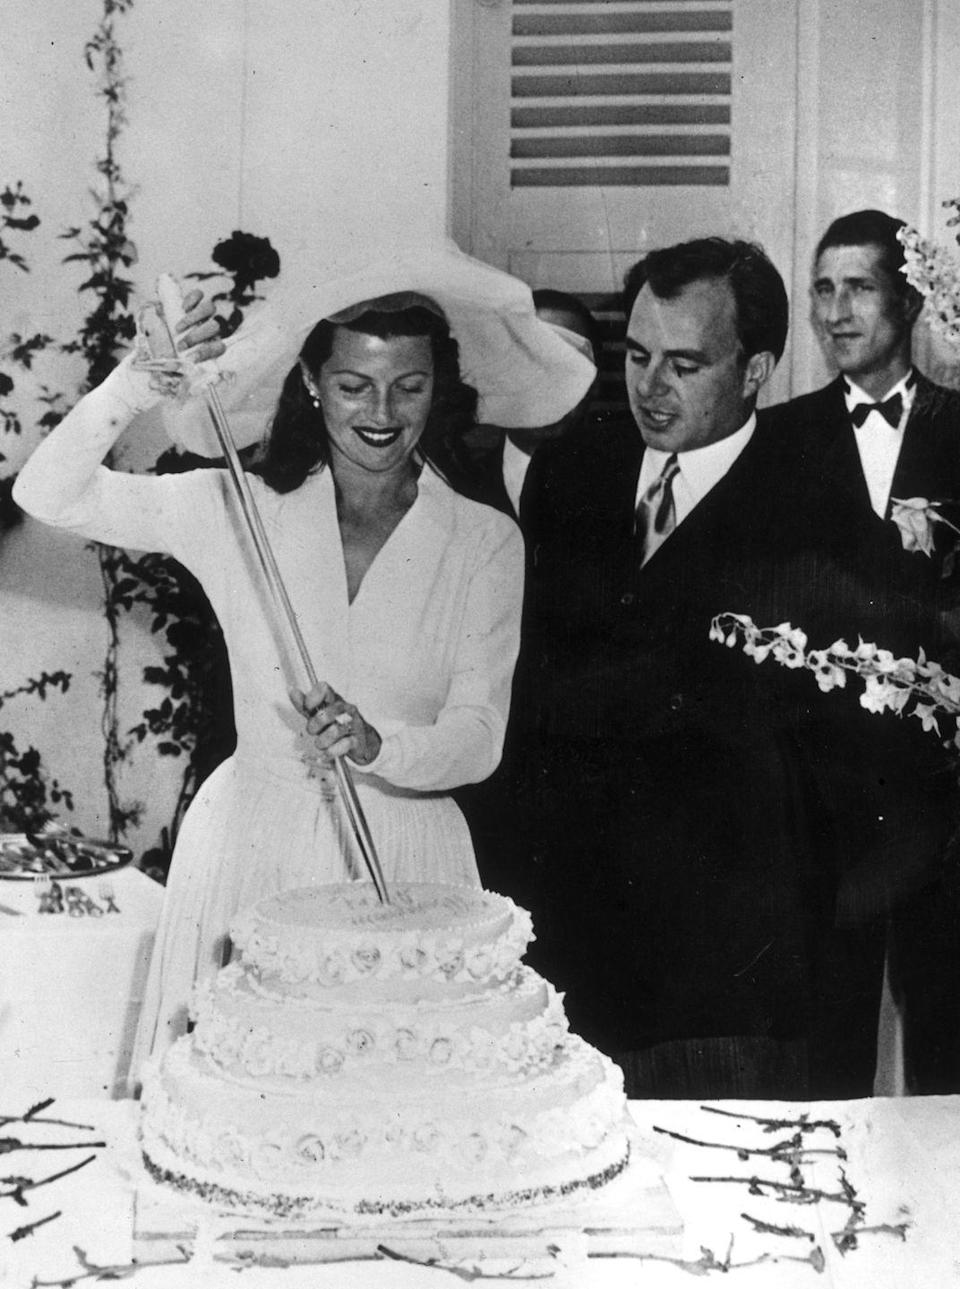 <p>The glamorous movie star of the 1940s married into royalty on May 28th, 1949. Her union to Prince Aly Khan, son of Sultan Mahommed Shah, was her third marriage and his second. The couple divorced in 1953. She went on to have two more marriages, while he never walked down the aisle again.</p>